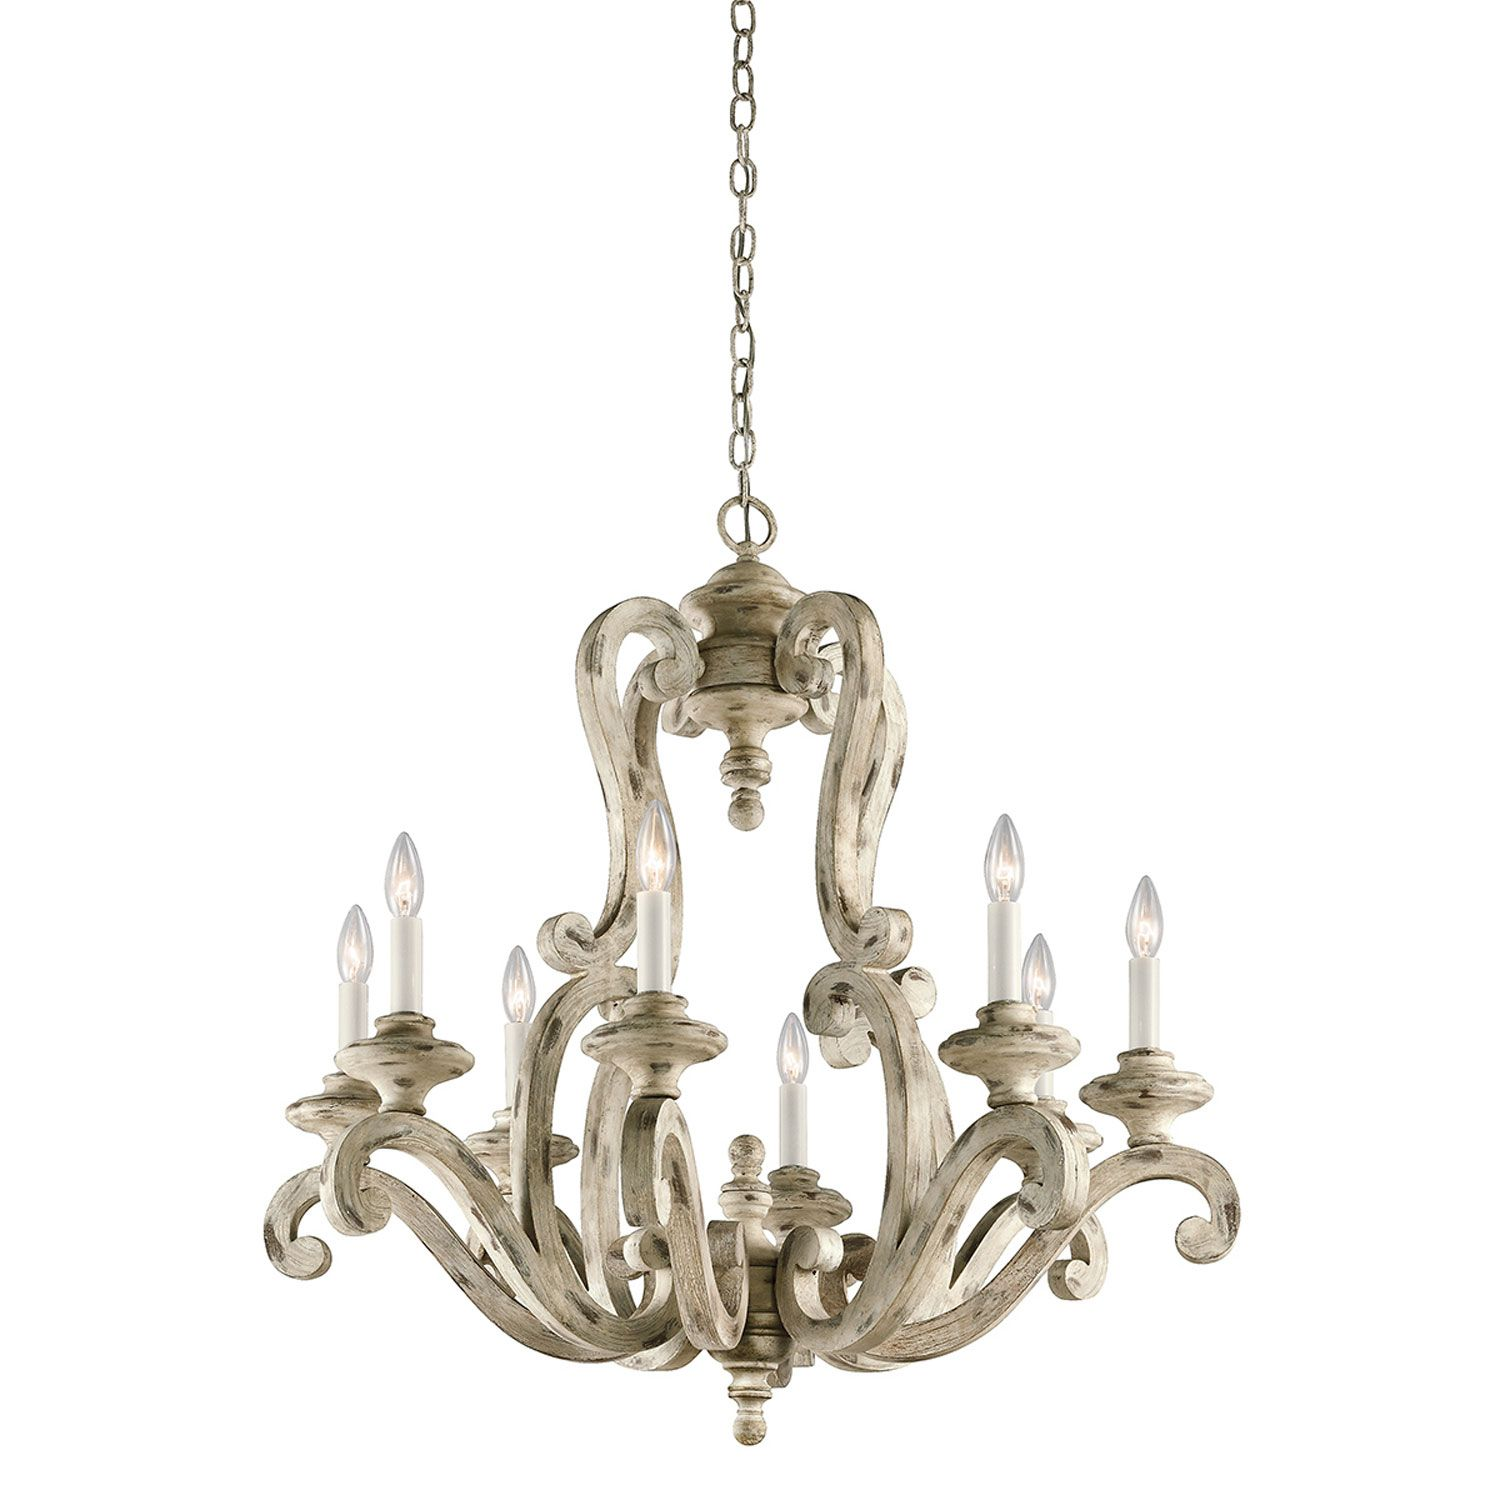 Kichler Hayman Bay Distressed Antique White Eight Light Chandelier